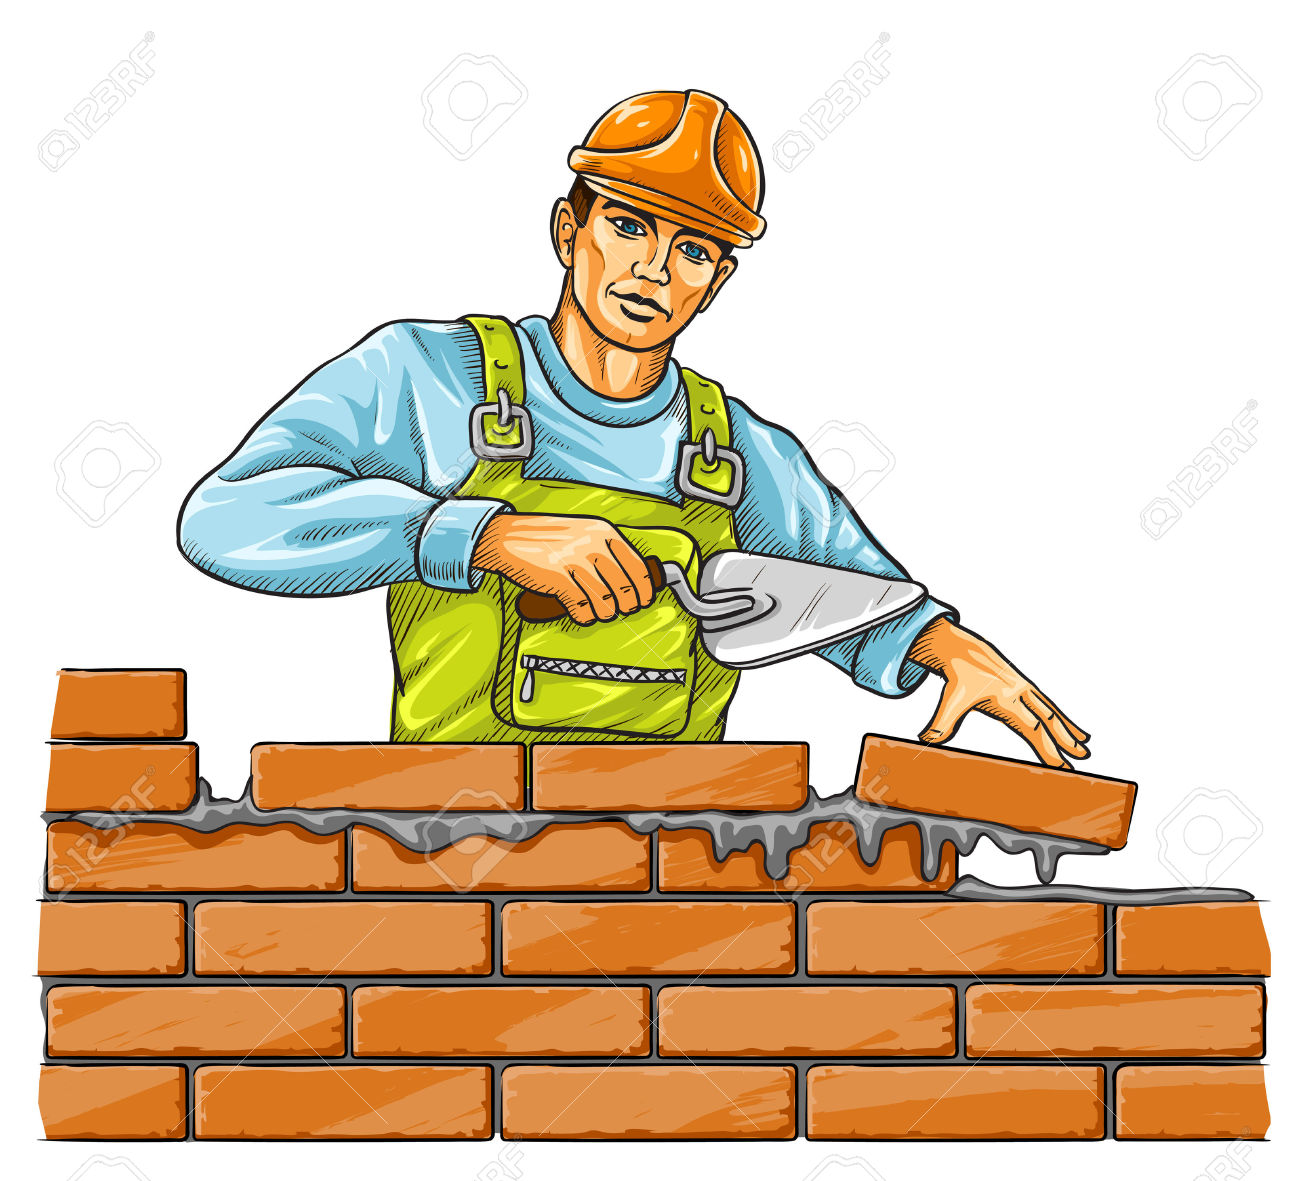 Builder Man With Derby Tool Building A Brick Wall.